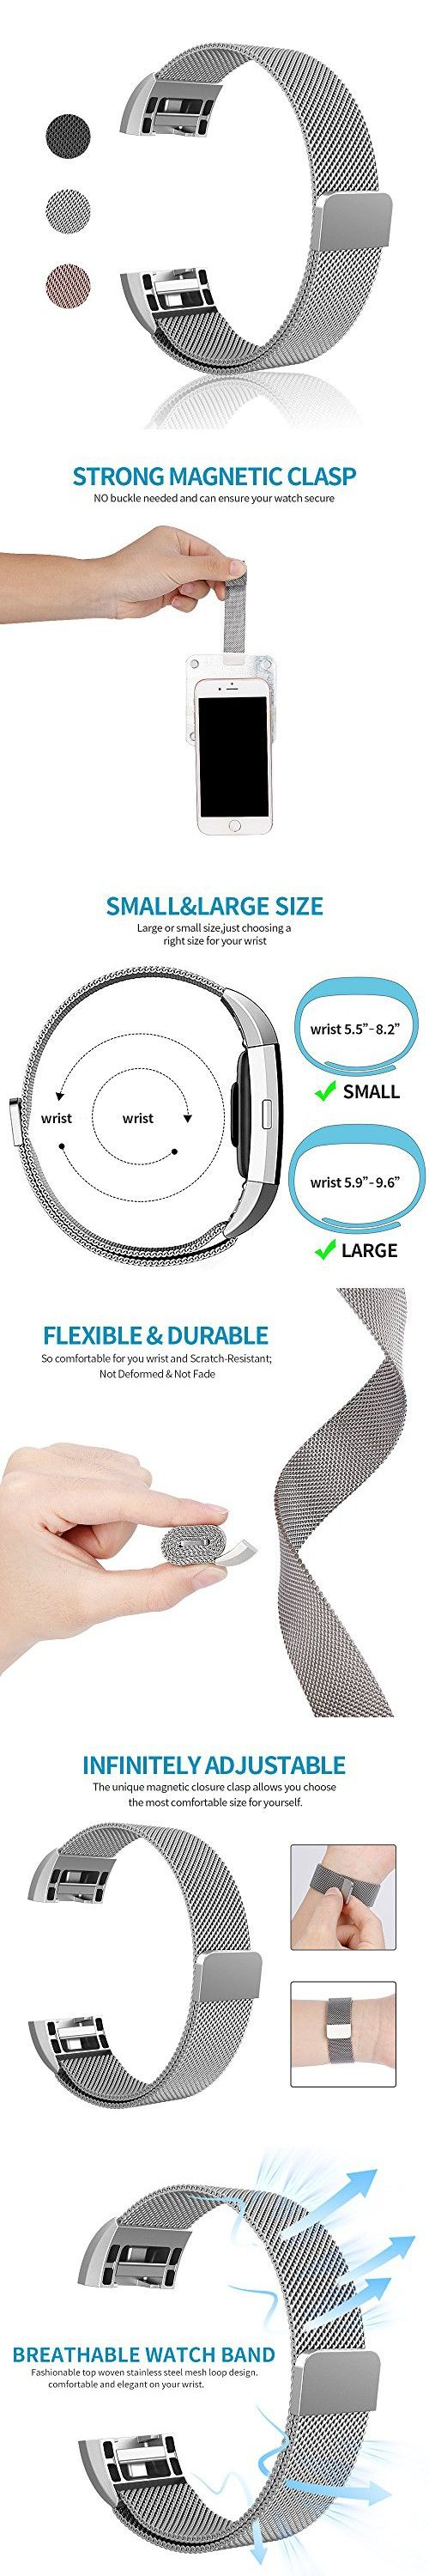 Fitbit Charge 2 Band-TENKER Adjustable Replacement Accessories Bands, Metal Wristband Band Strap - Stainless Steel Milanese Loop Metal Replacement Accessories Bracelet Strap (SILVER-S)